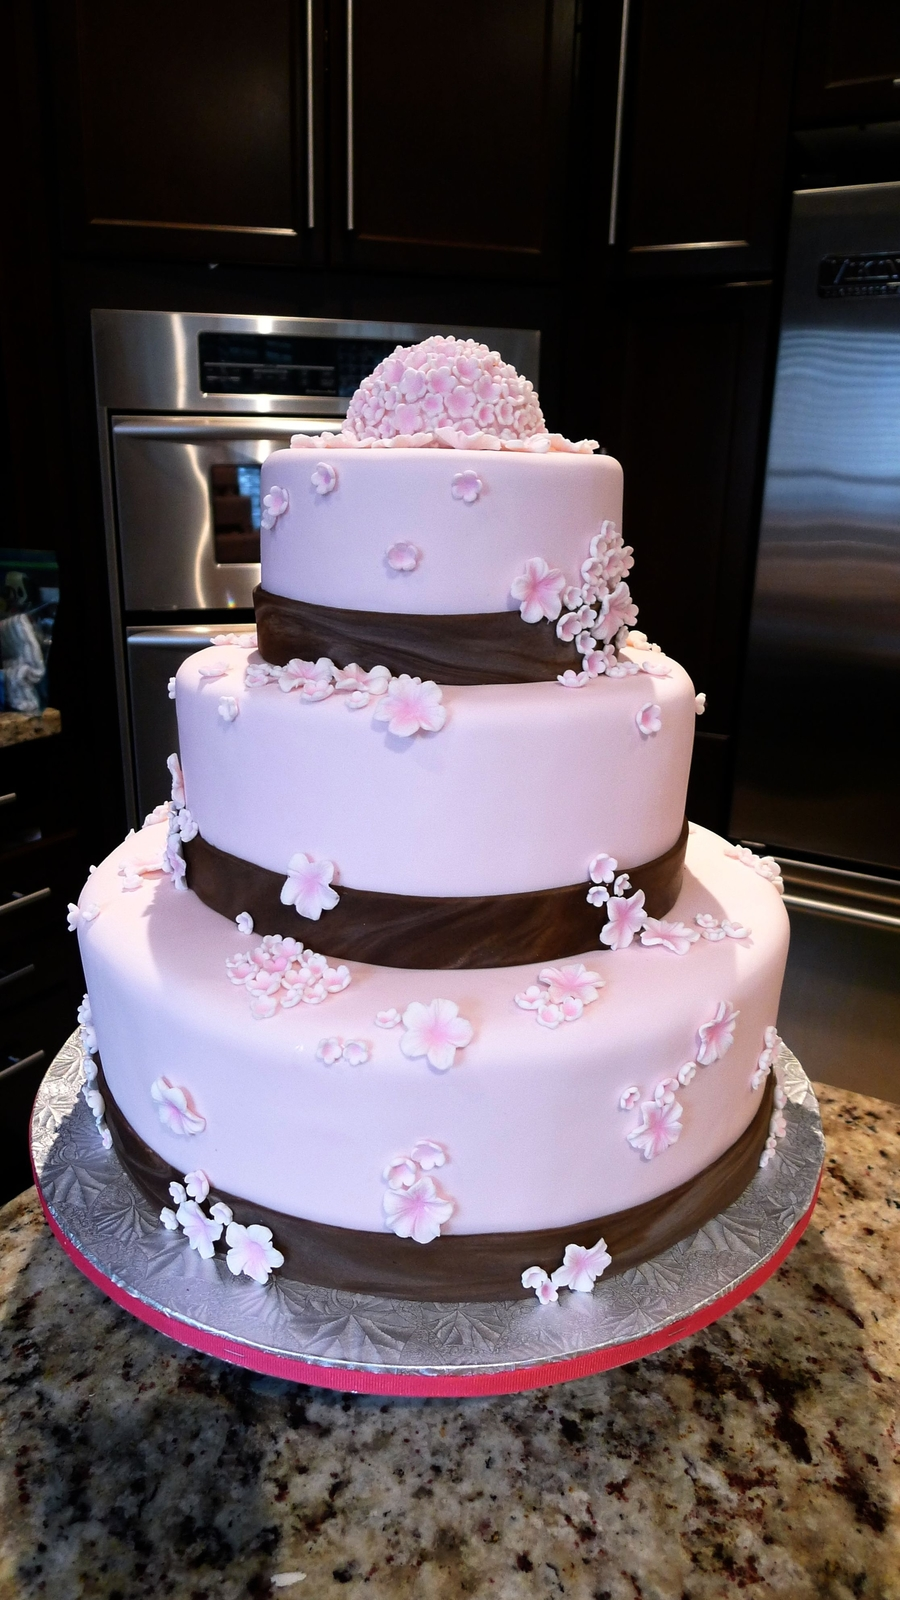 Cherry Blossom Wedding Cake - 2Nd on Cake Central